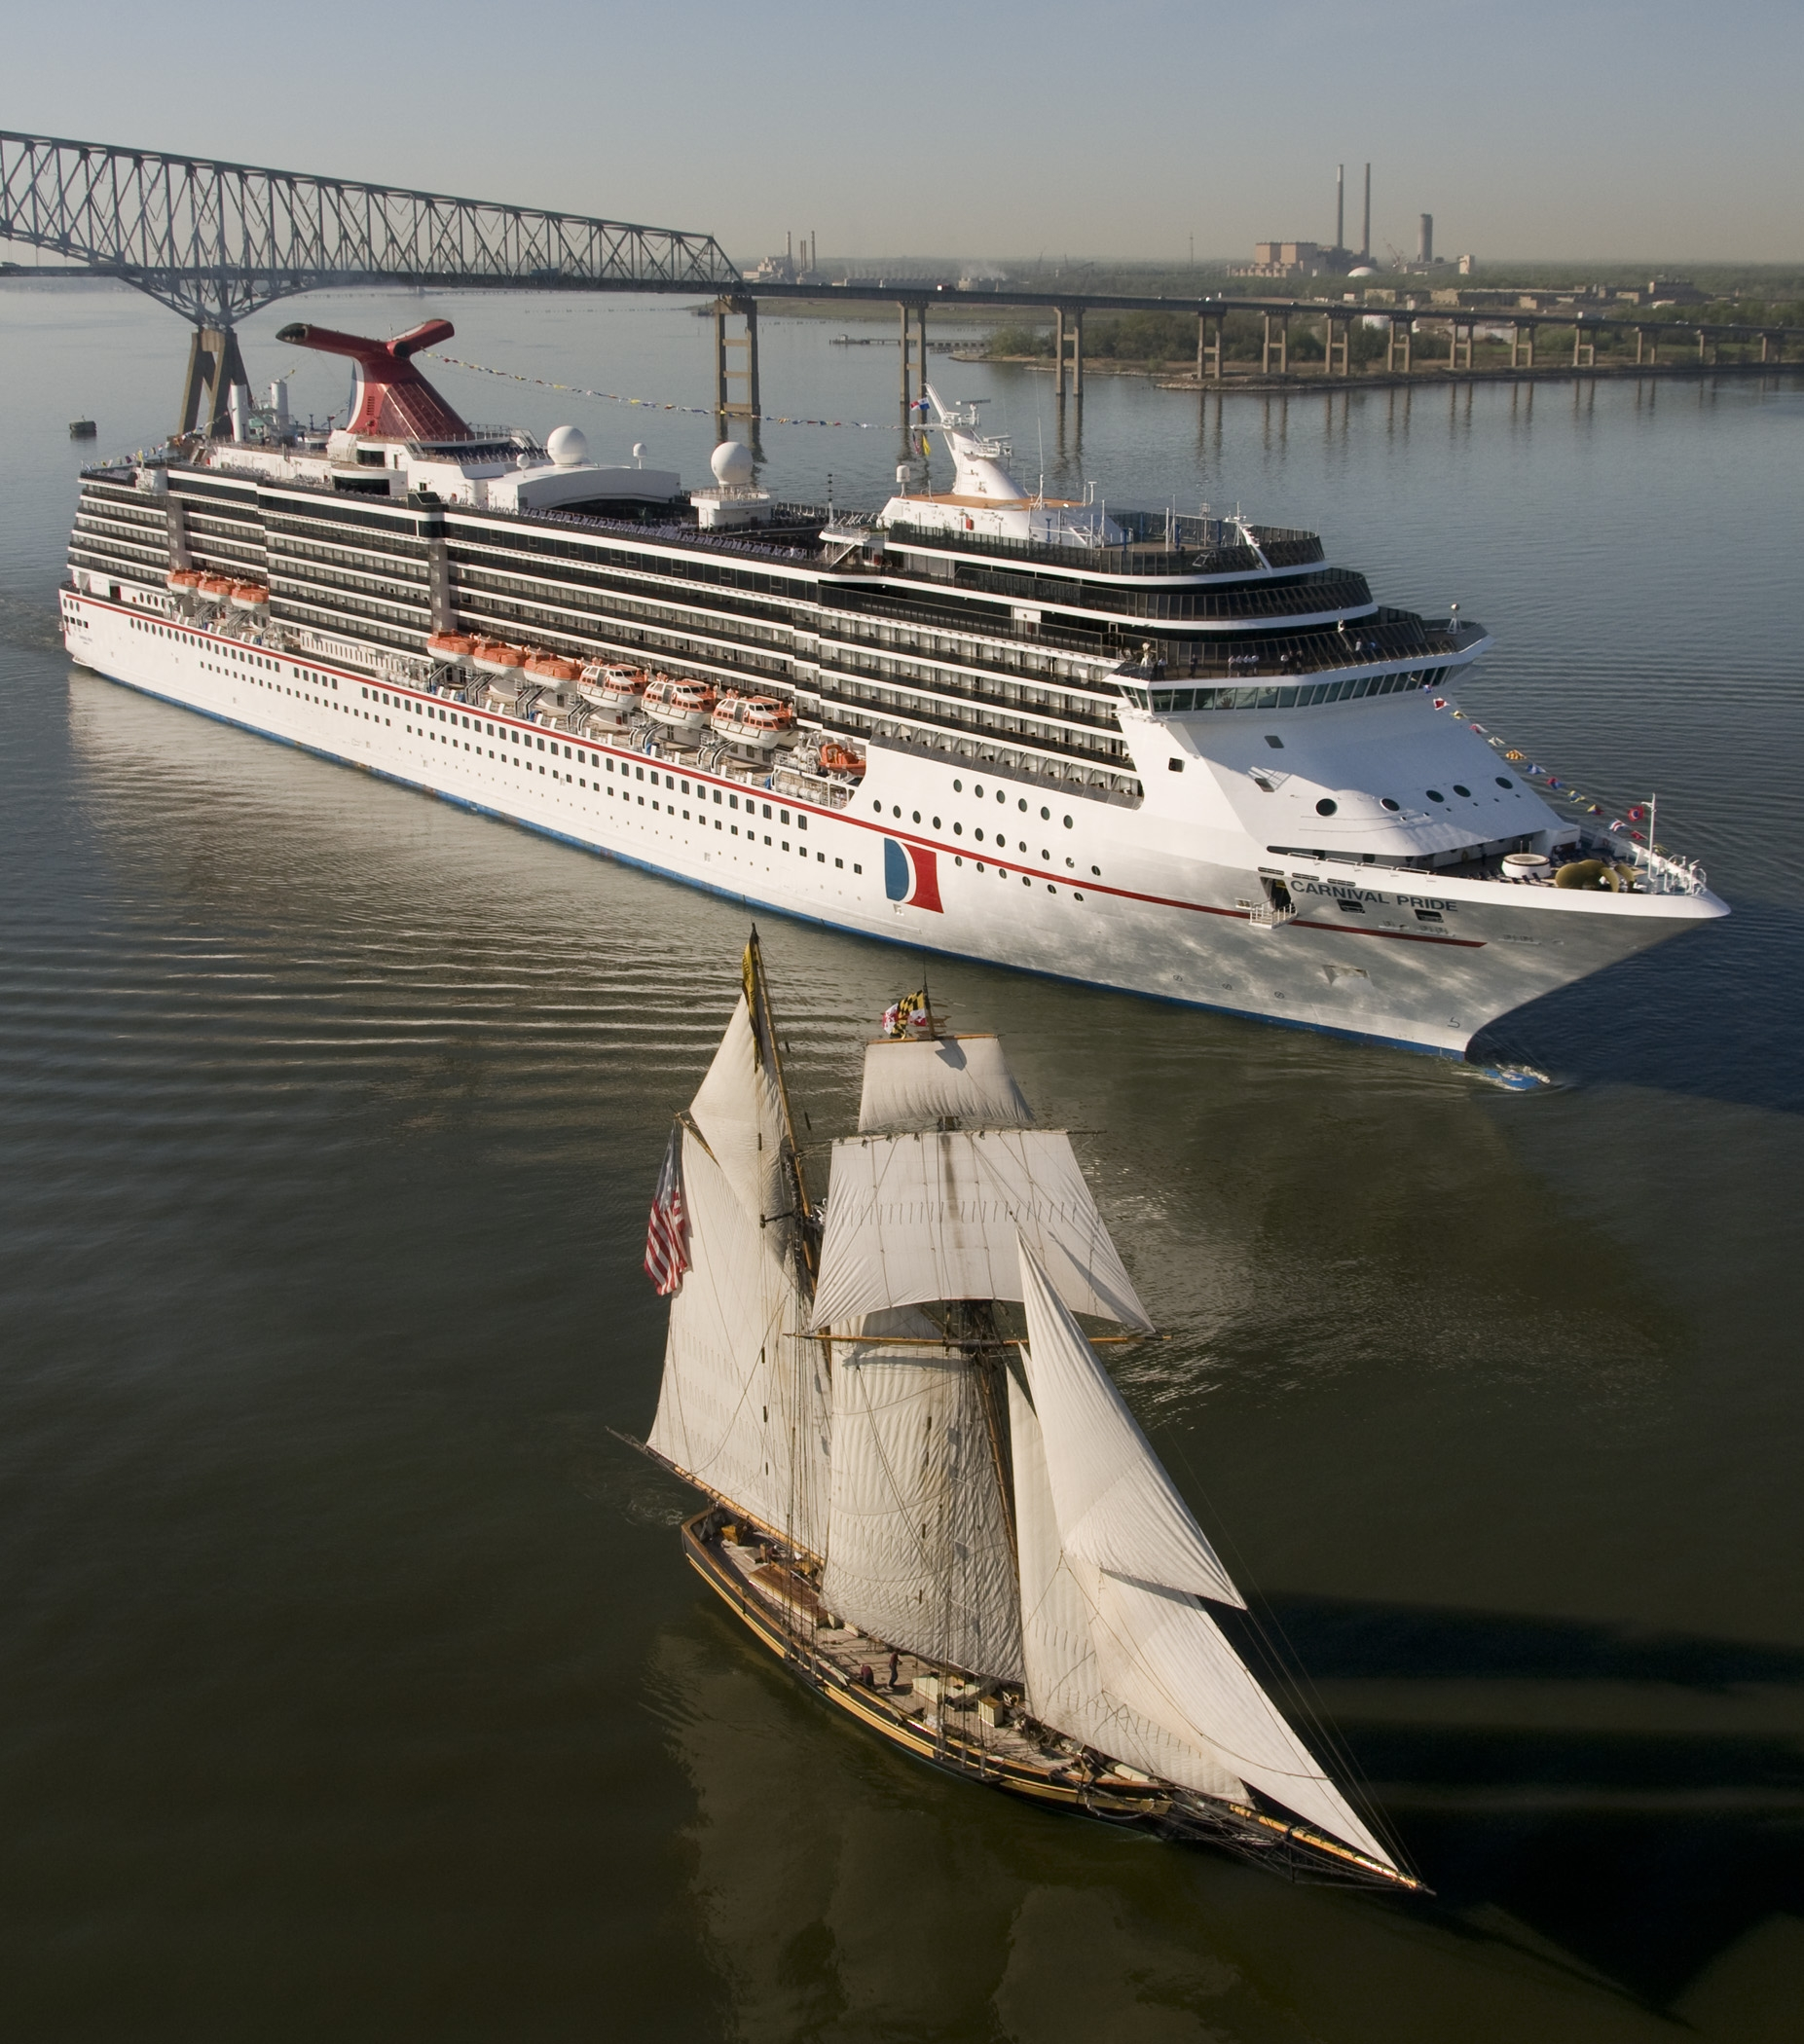 Carnival Pride sails the Port of Baltimore. Cruise ship.